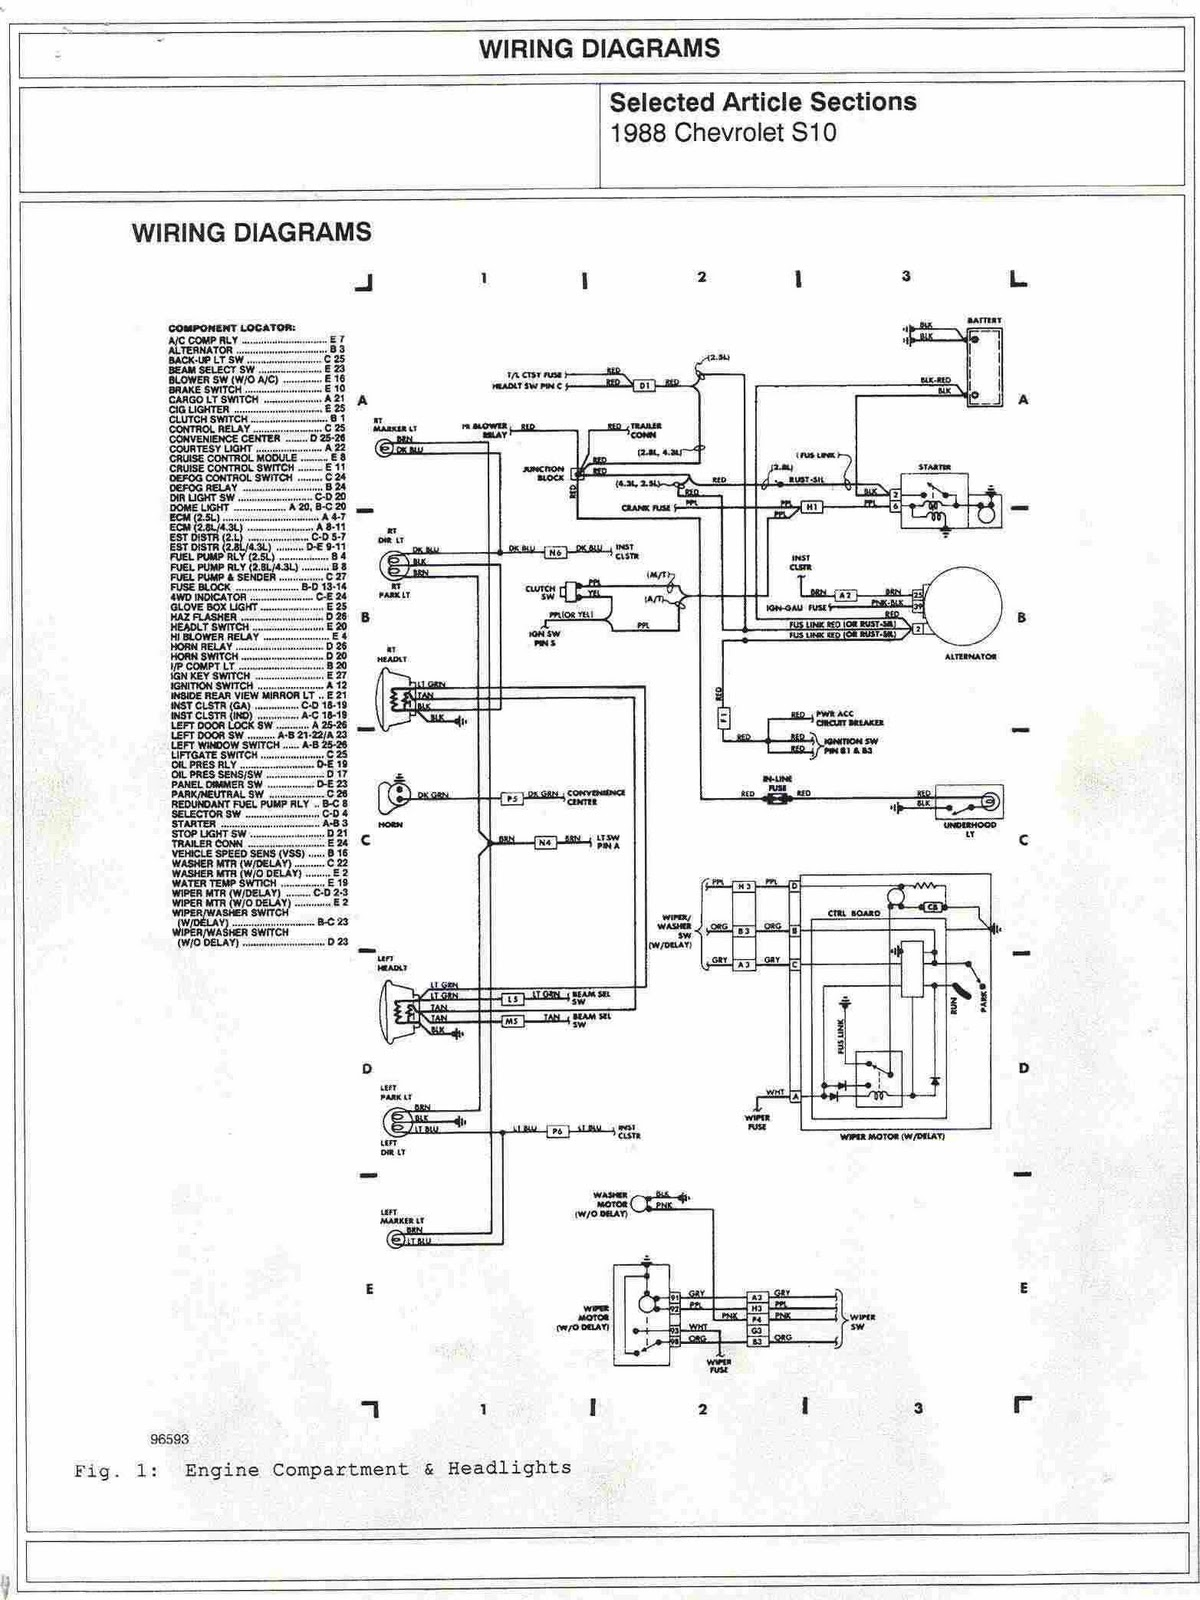 1988+Chevrolet+S10+Engine+Compartment+and+Headlights+Wiring+Diagrams 95 s10 wiring diagram 95 tahoe wiring diagram \u2022 wiring diagrams 2006 Dodge Ram Tail Light Wiring Diagram at panicattacktreatment.co